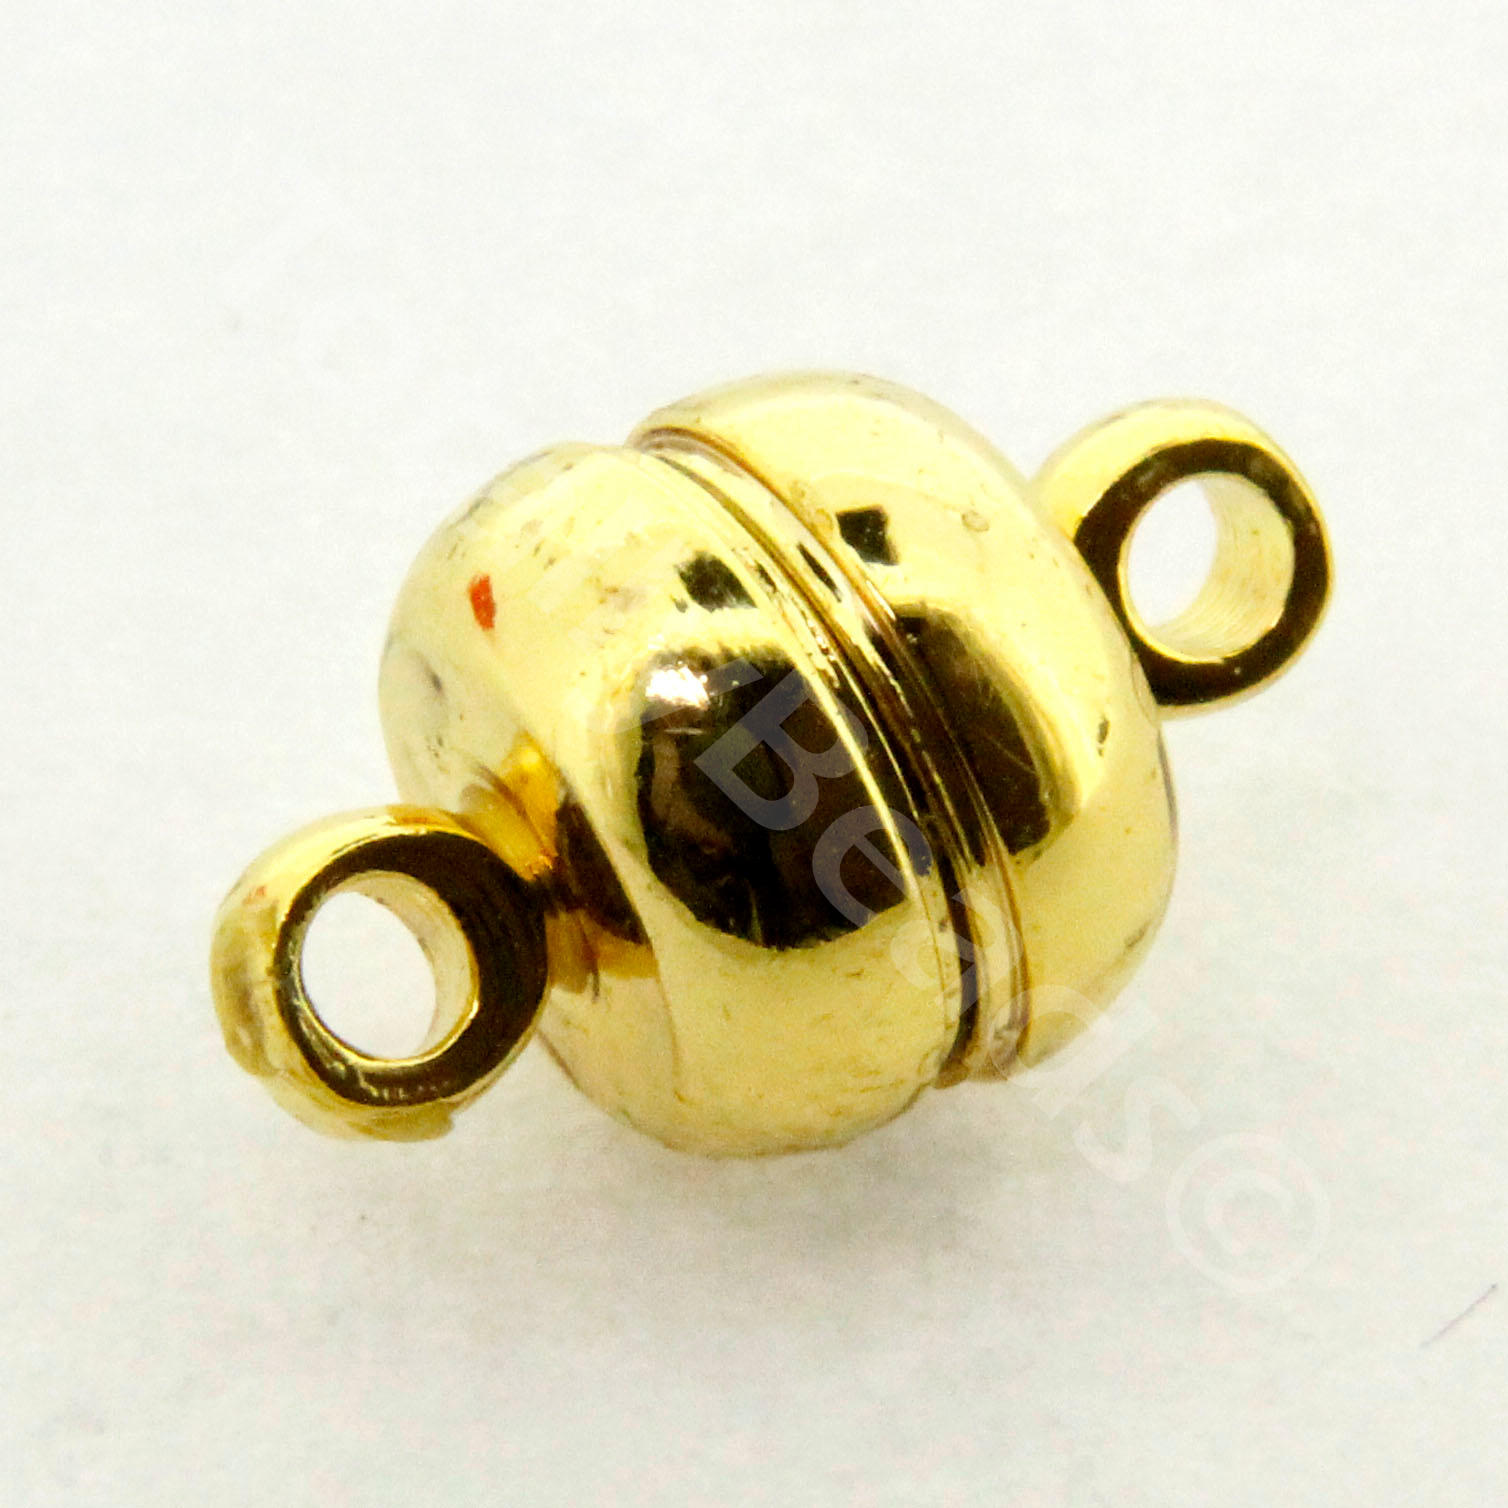 Magnetic Bell Clasps 8mm - Gold Plated - 2pcs